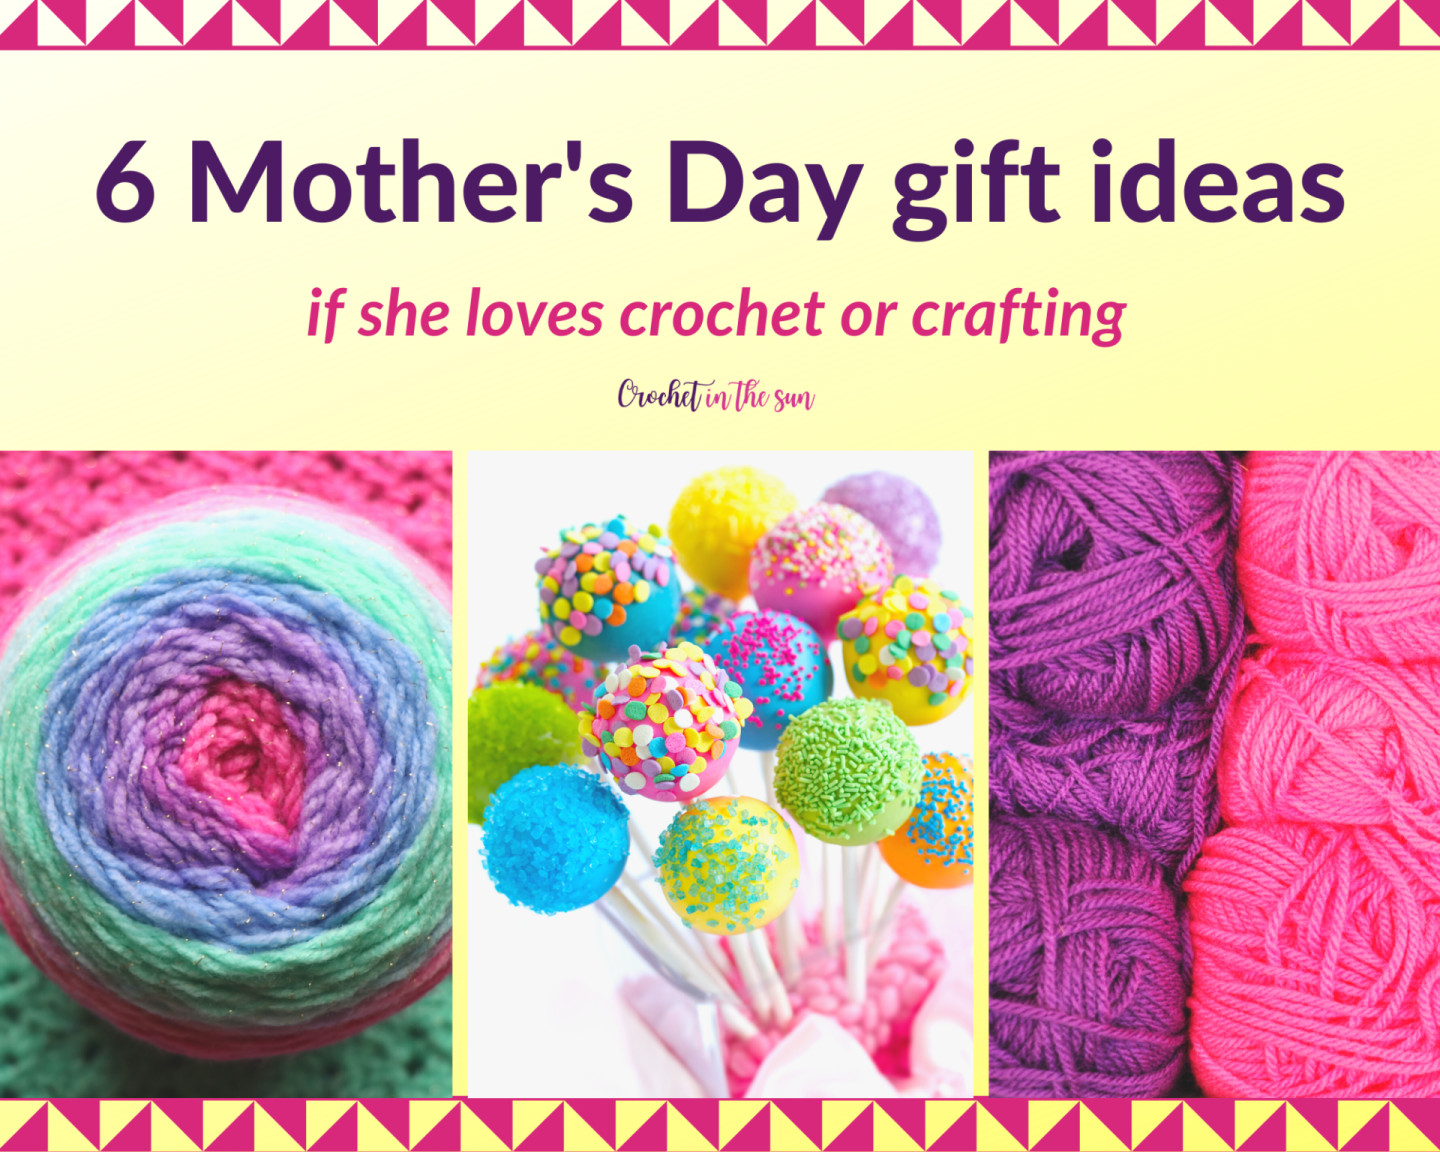 Mother'S Day Crochet Gift Ideas  Mother s Day Gift ideas if she s a crafter or crocheter 5